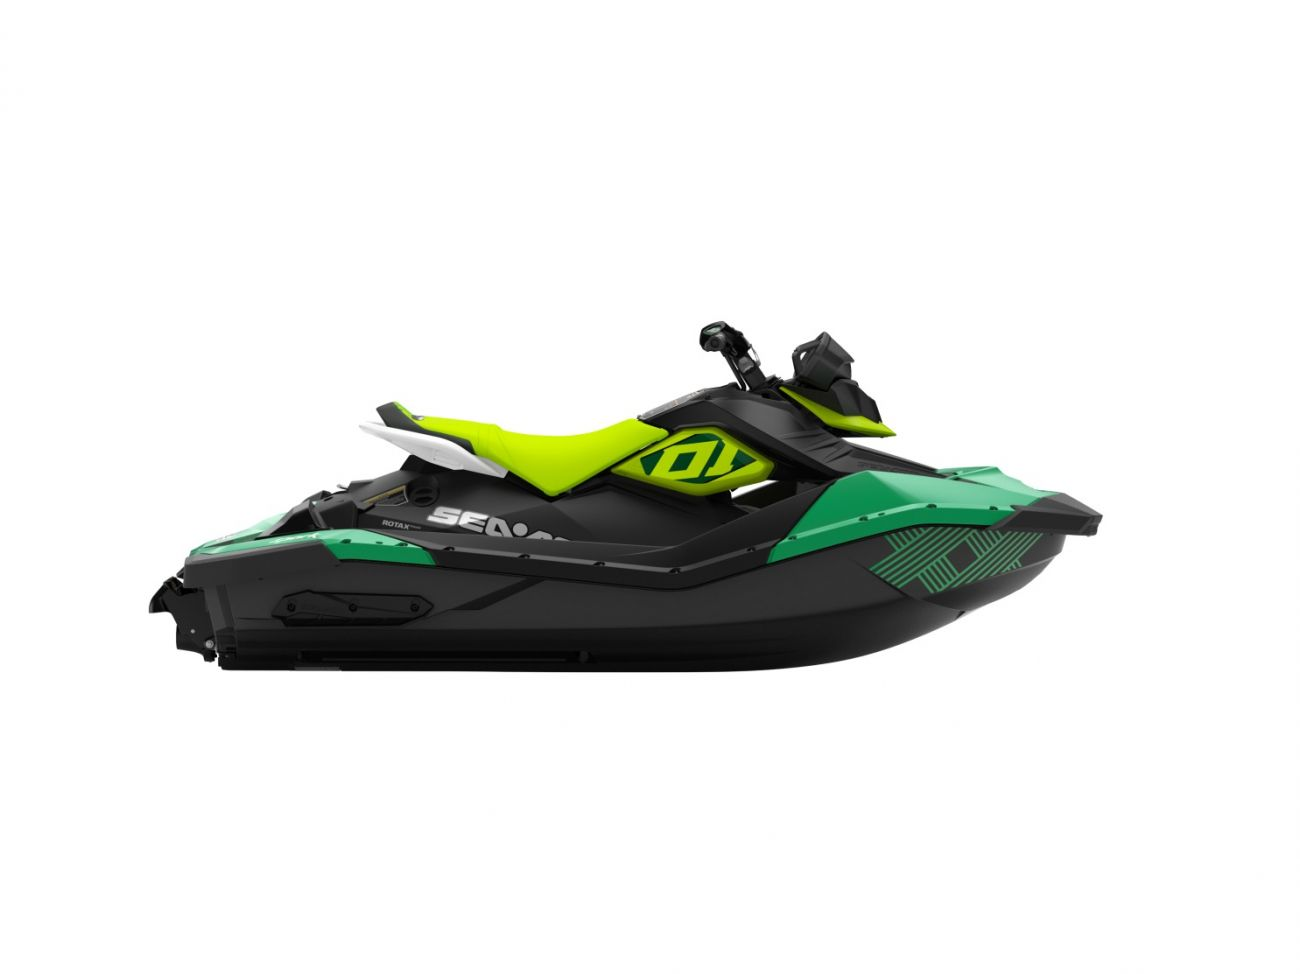 WATERSPORTS SEA-DOO_IMAGERY REC_LITE MY21 SEA_MY21_RECLT_Spark_Trixx_90__180920142158_lowres